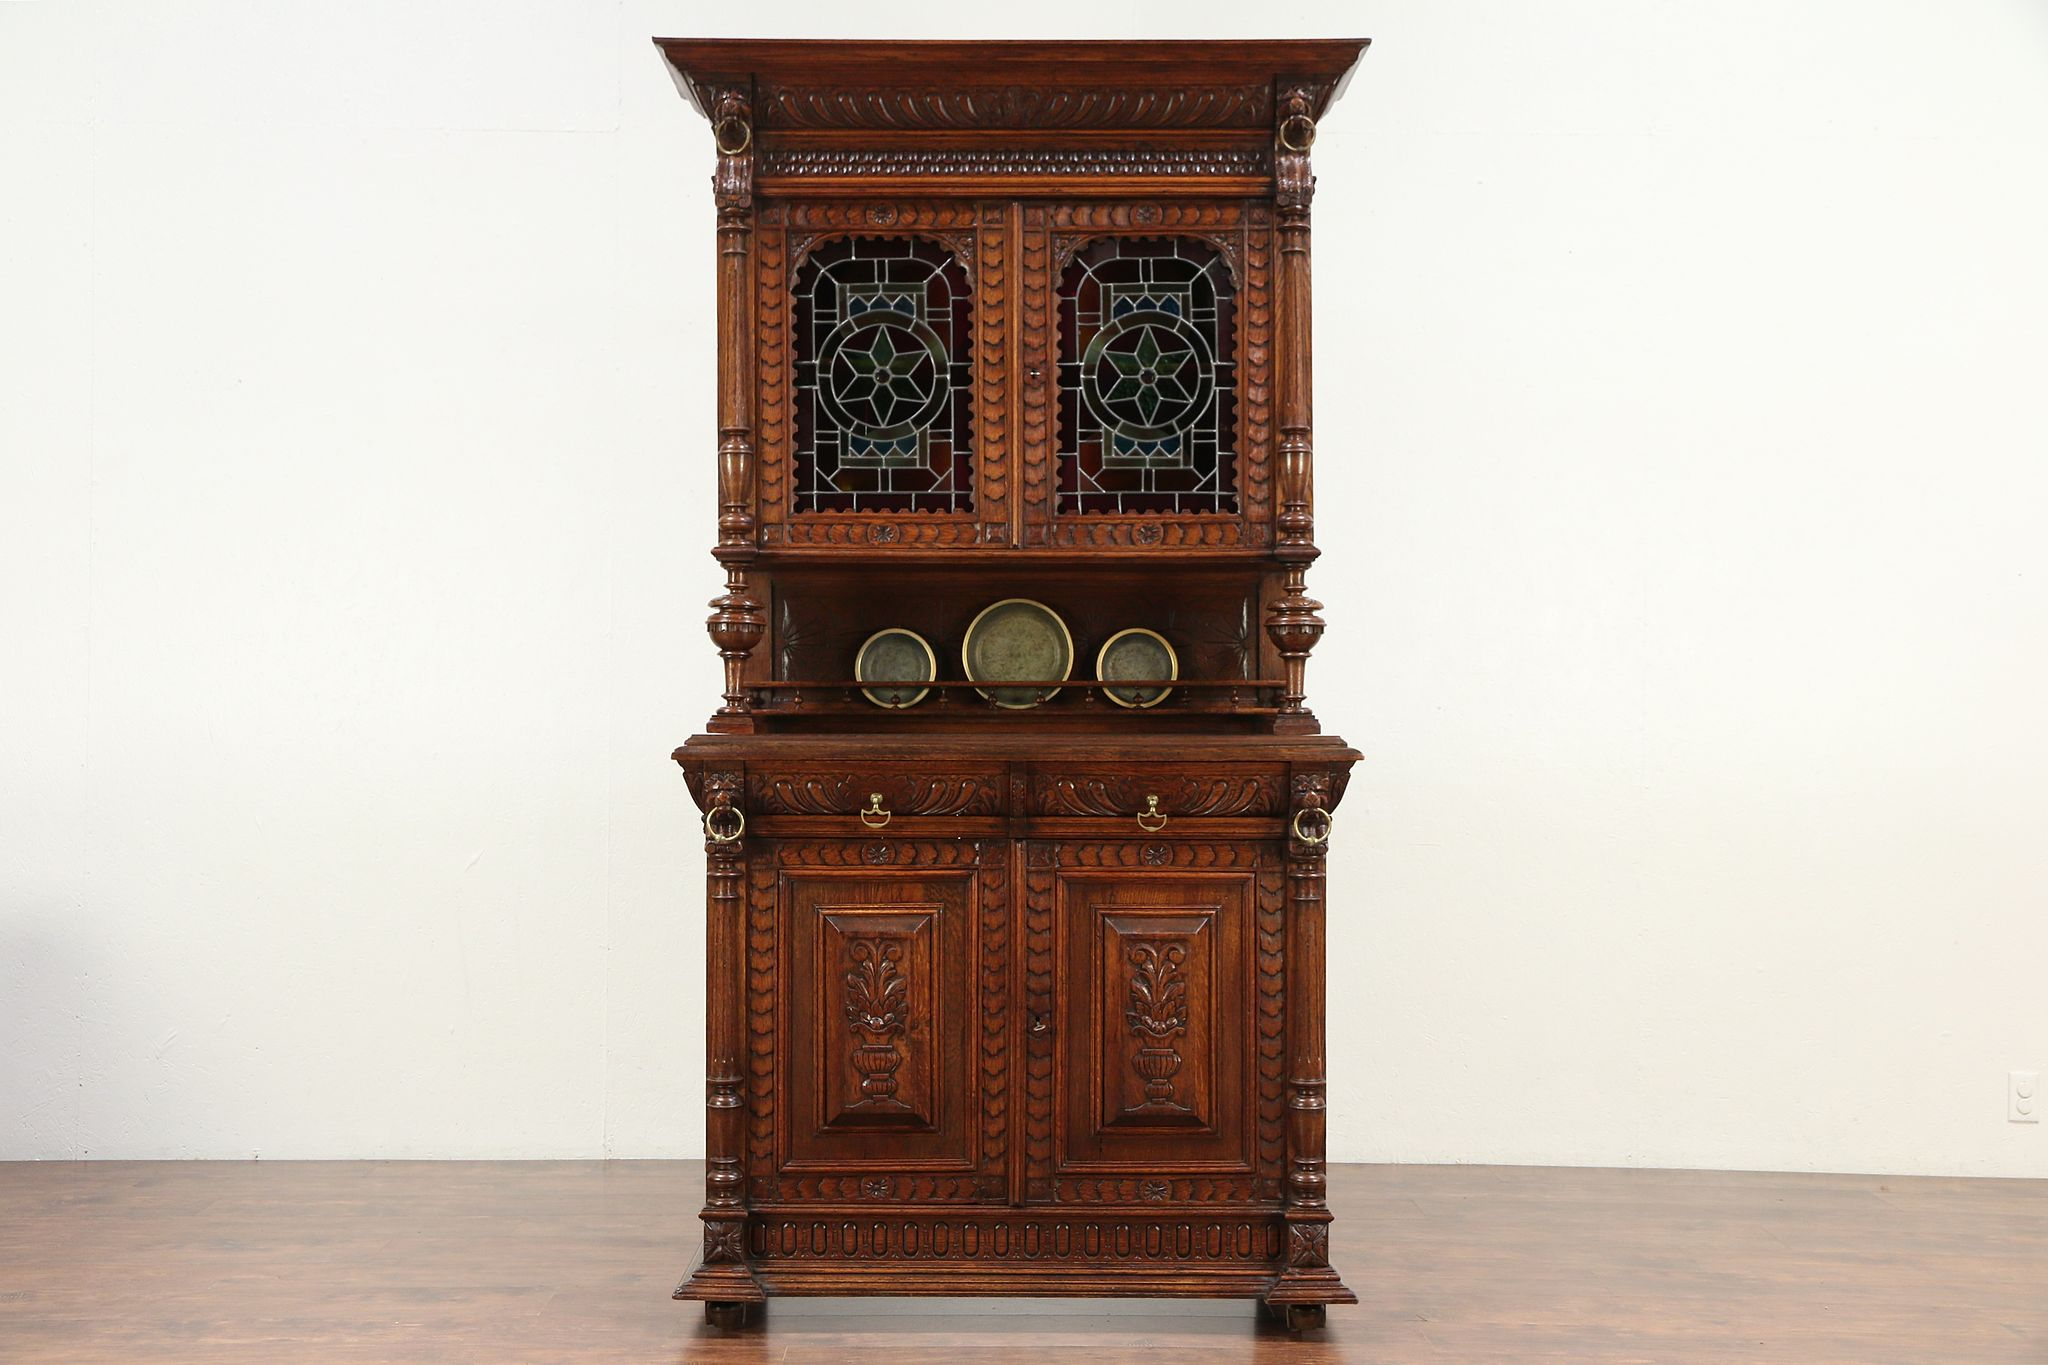 oak antique french sideboard china cabinet court cupboard stained glass 29642 - Antique Cupboard